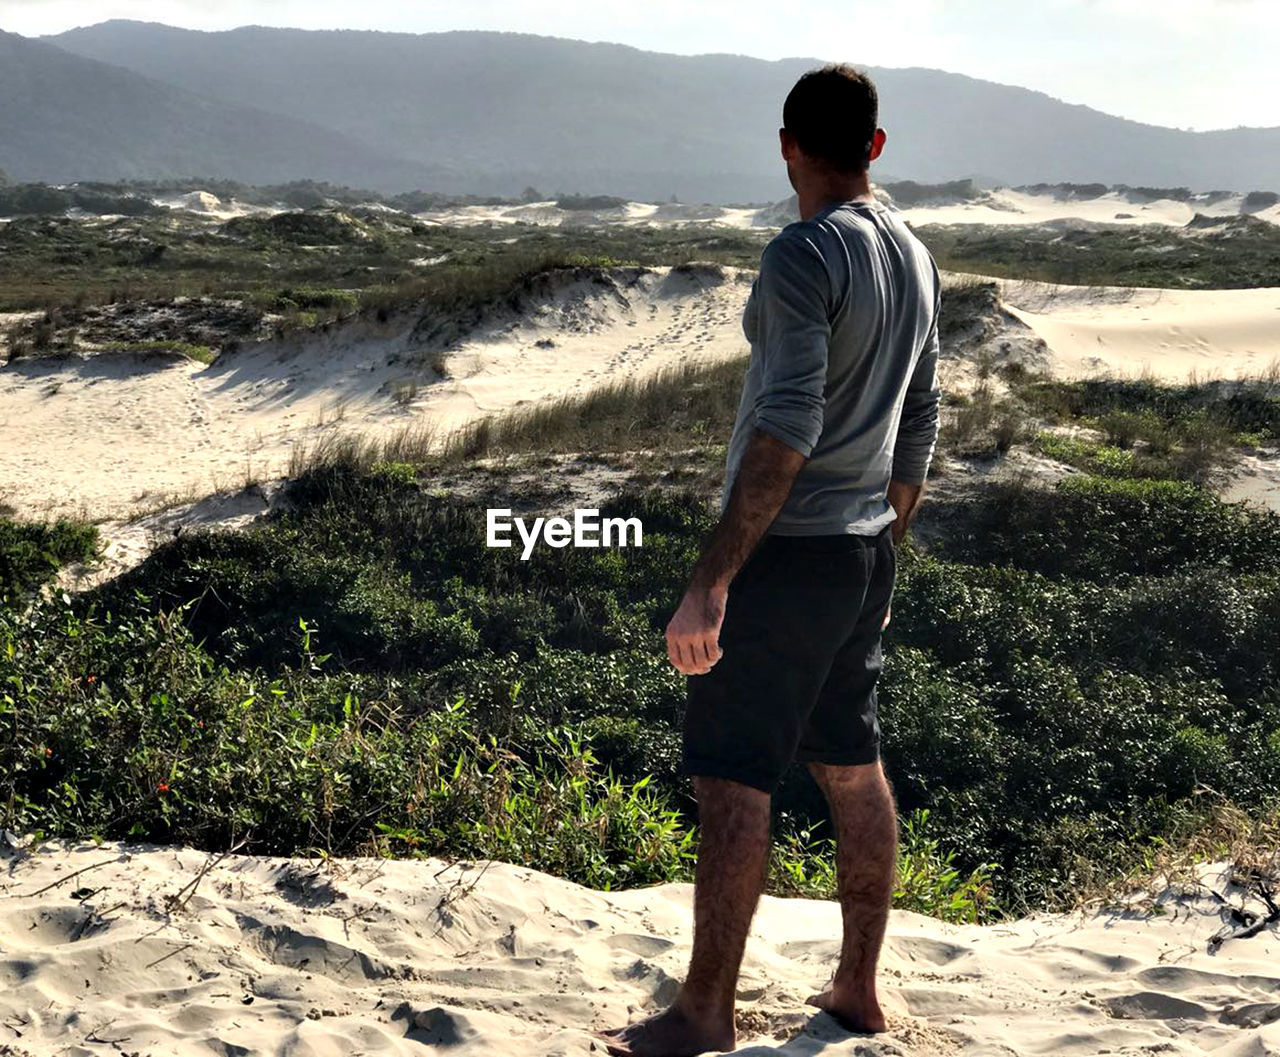 one person, casual clothing, standing, real people, leisure activity, mountain, lifestyles, full length, nature, plant, land, young men, beauty in nature, scenics - nature, day, sunlight, men, non-urban scene, outdoors, shorts, looking at view